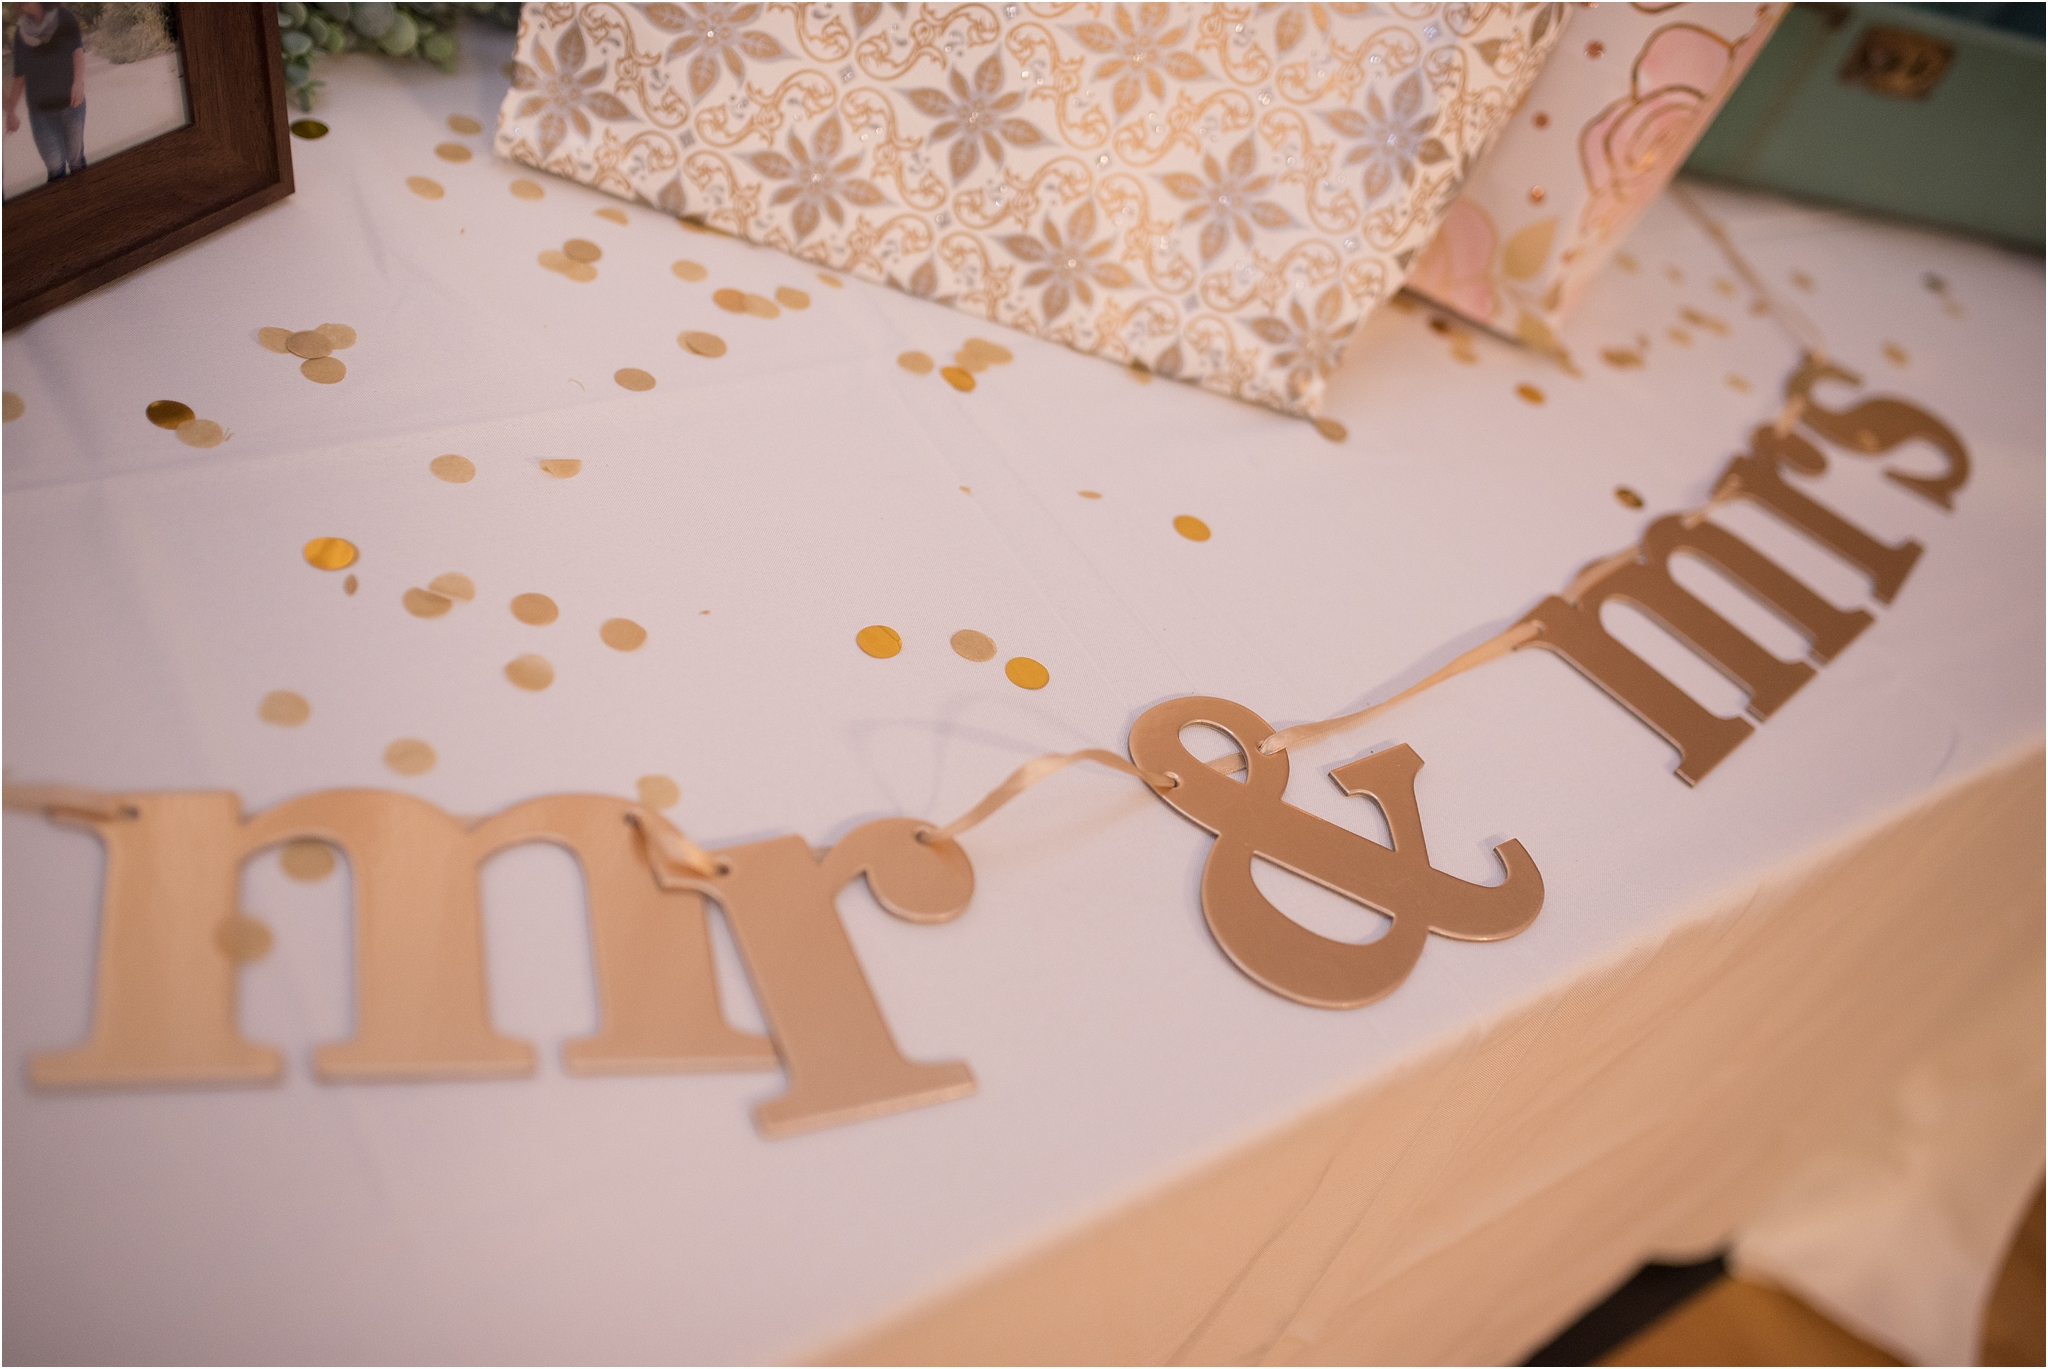 kayla kitts photography - albuquerque wedding photographer - hairpins and scissors - a cake odyssey - new mexico wedding photographer_0124.jpg